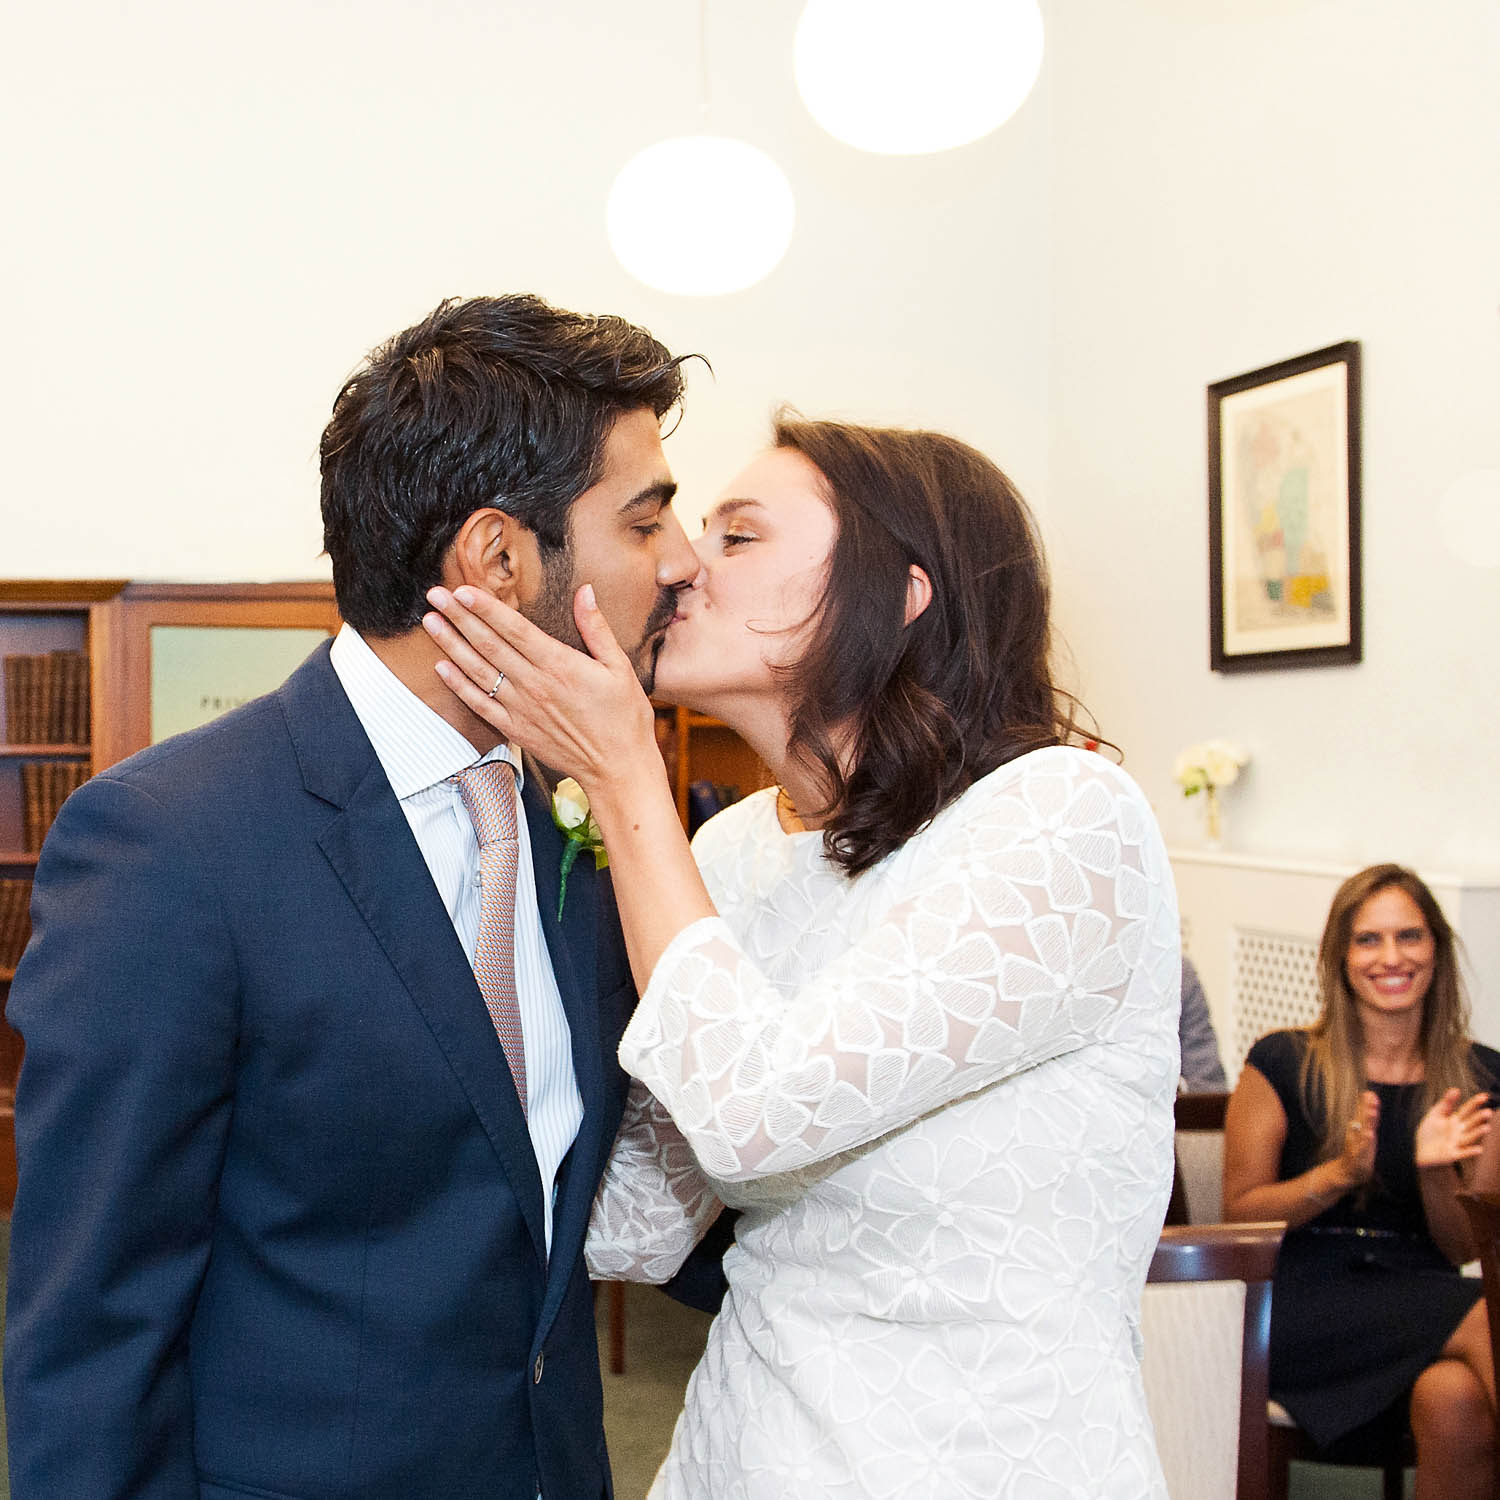 A bride and groom kiss during their civil marriage ceremony. Photo: Mayfair Library wedding photographer Emma Duggan